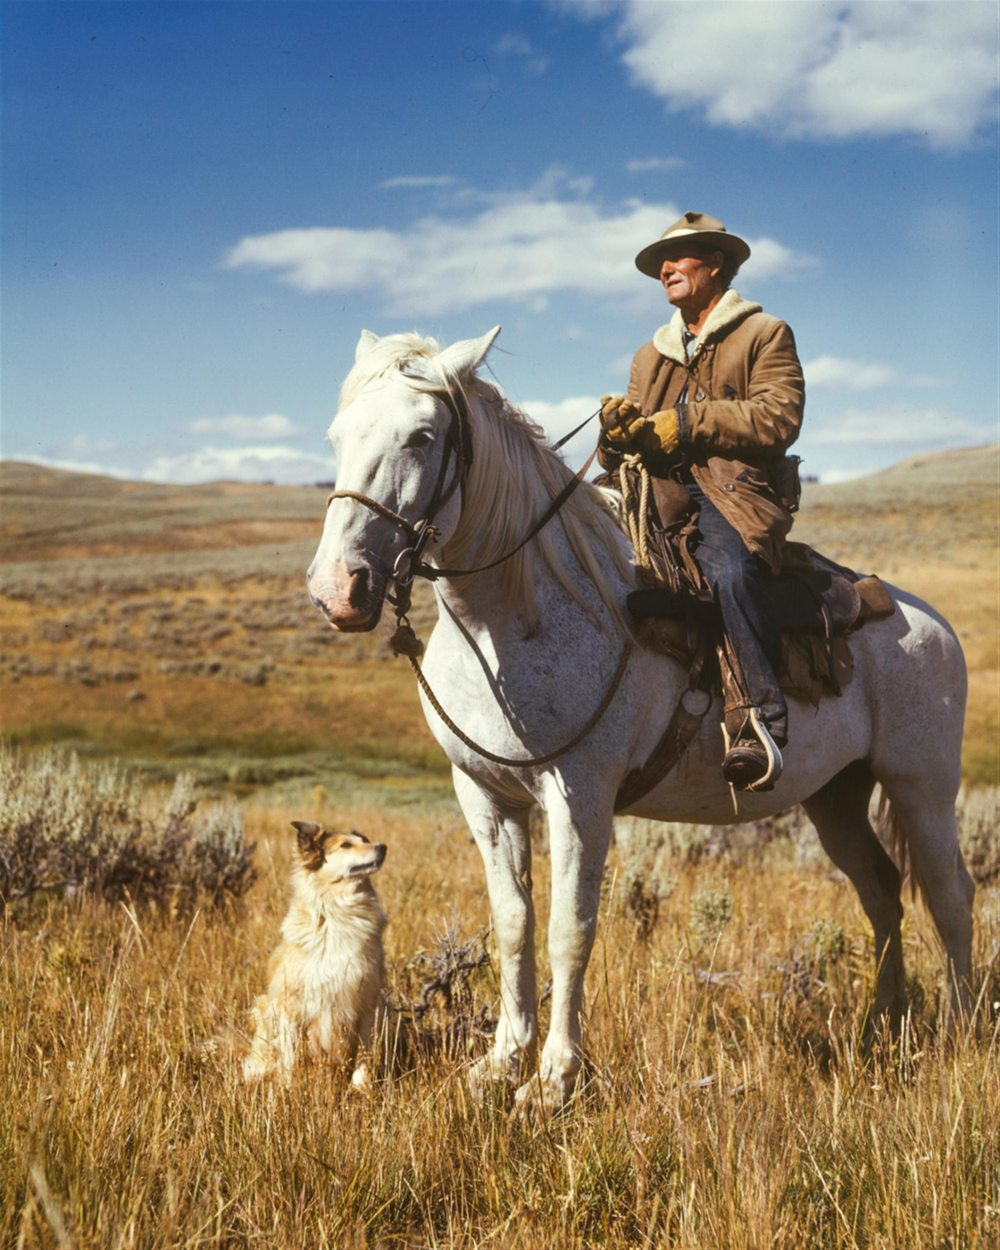 adventure-animals-cowboy-162520